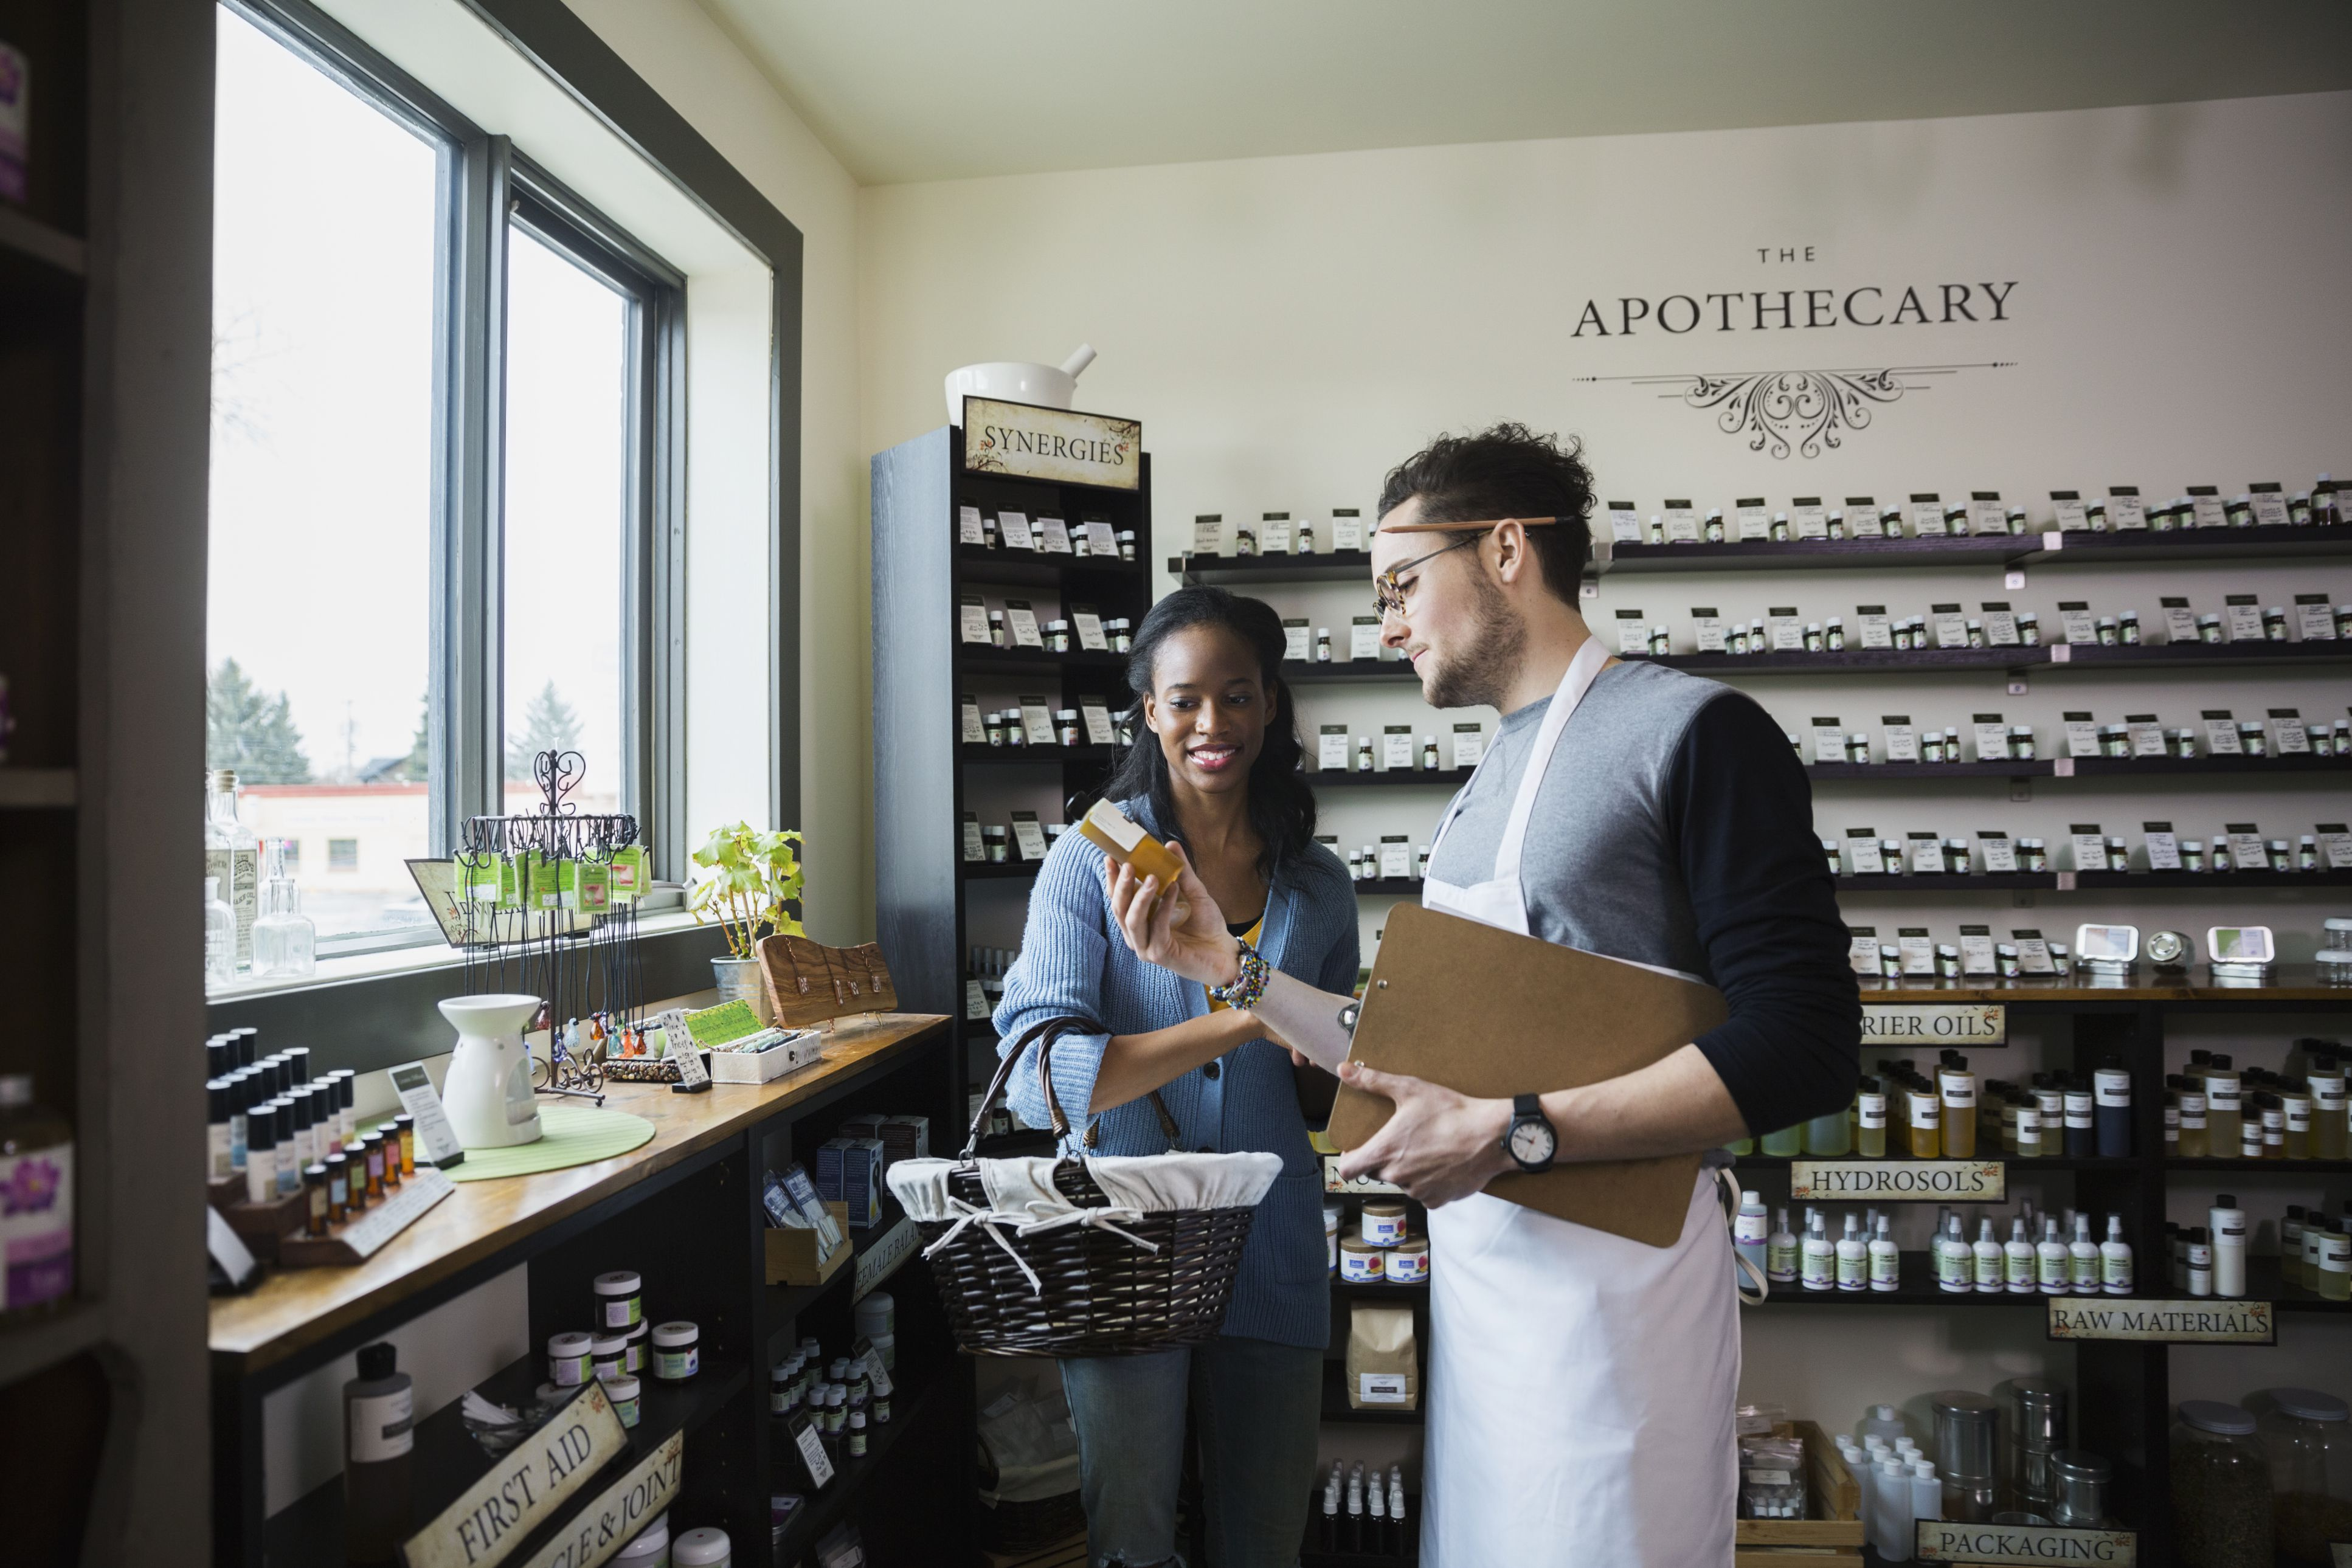 a man and woman in an apothecary shop